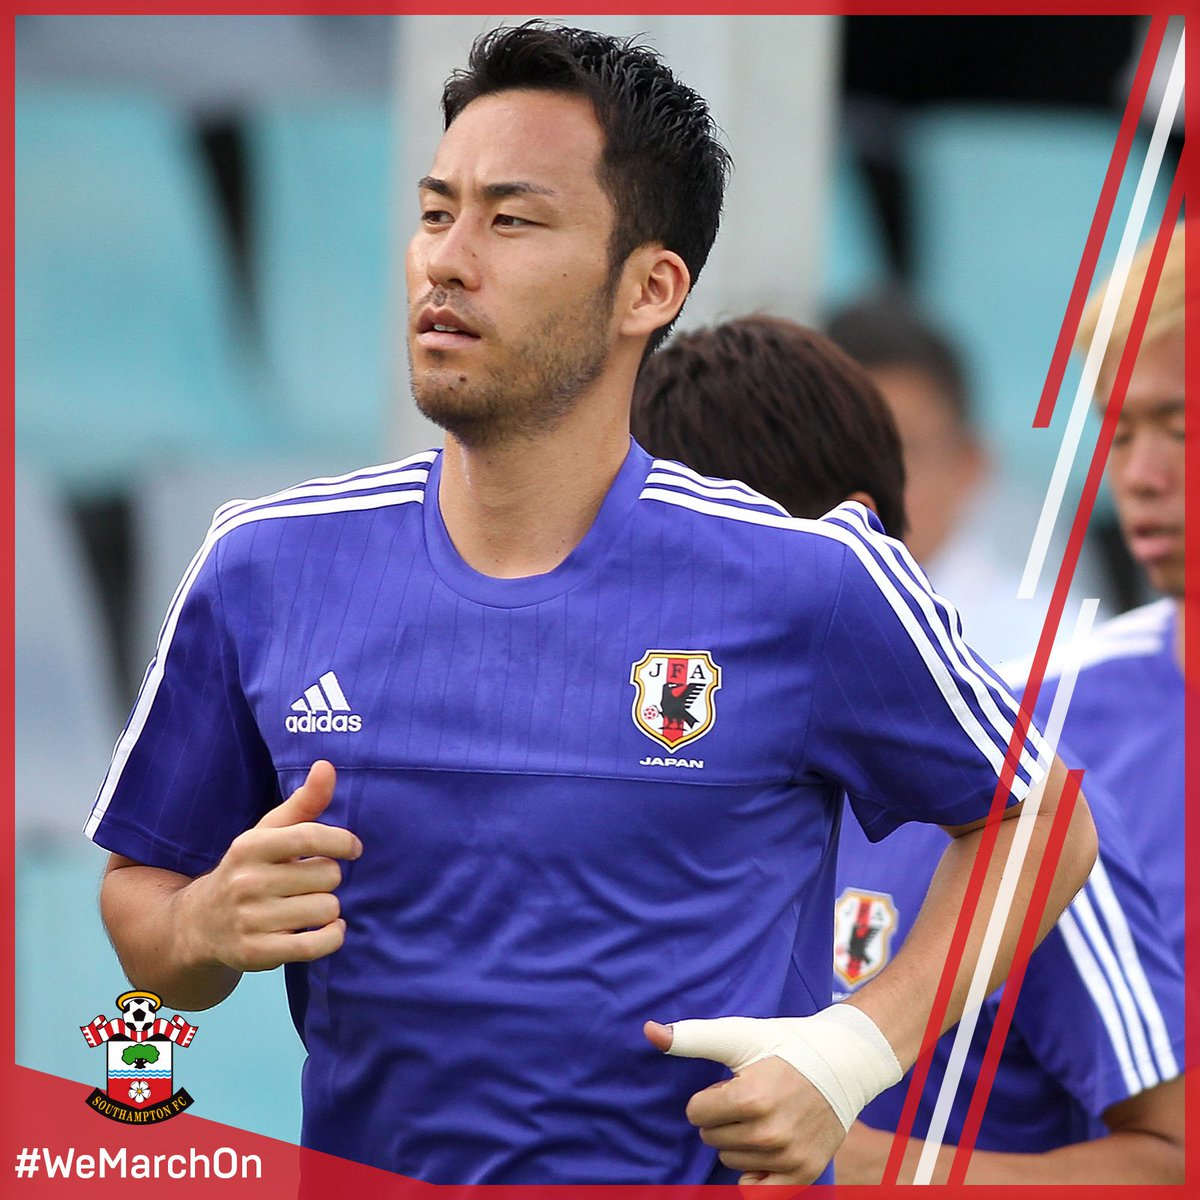 It's a big moment for #SaintsFC's @MayaYoshida3 this afternoon, as he...